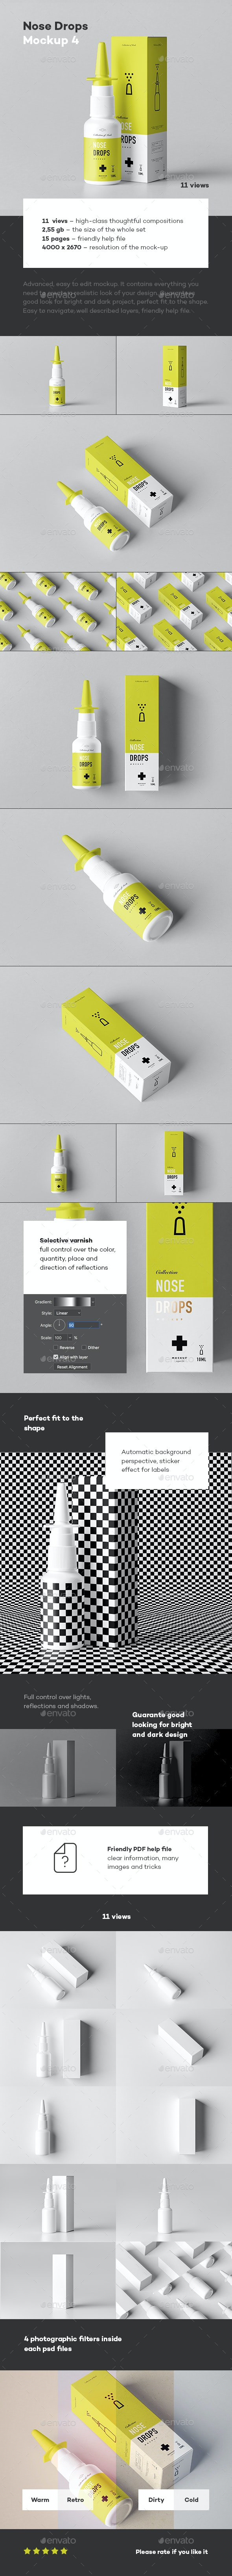 Nose Drops Mock-up 4 - Miscellaneous Packaging